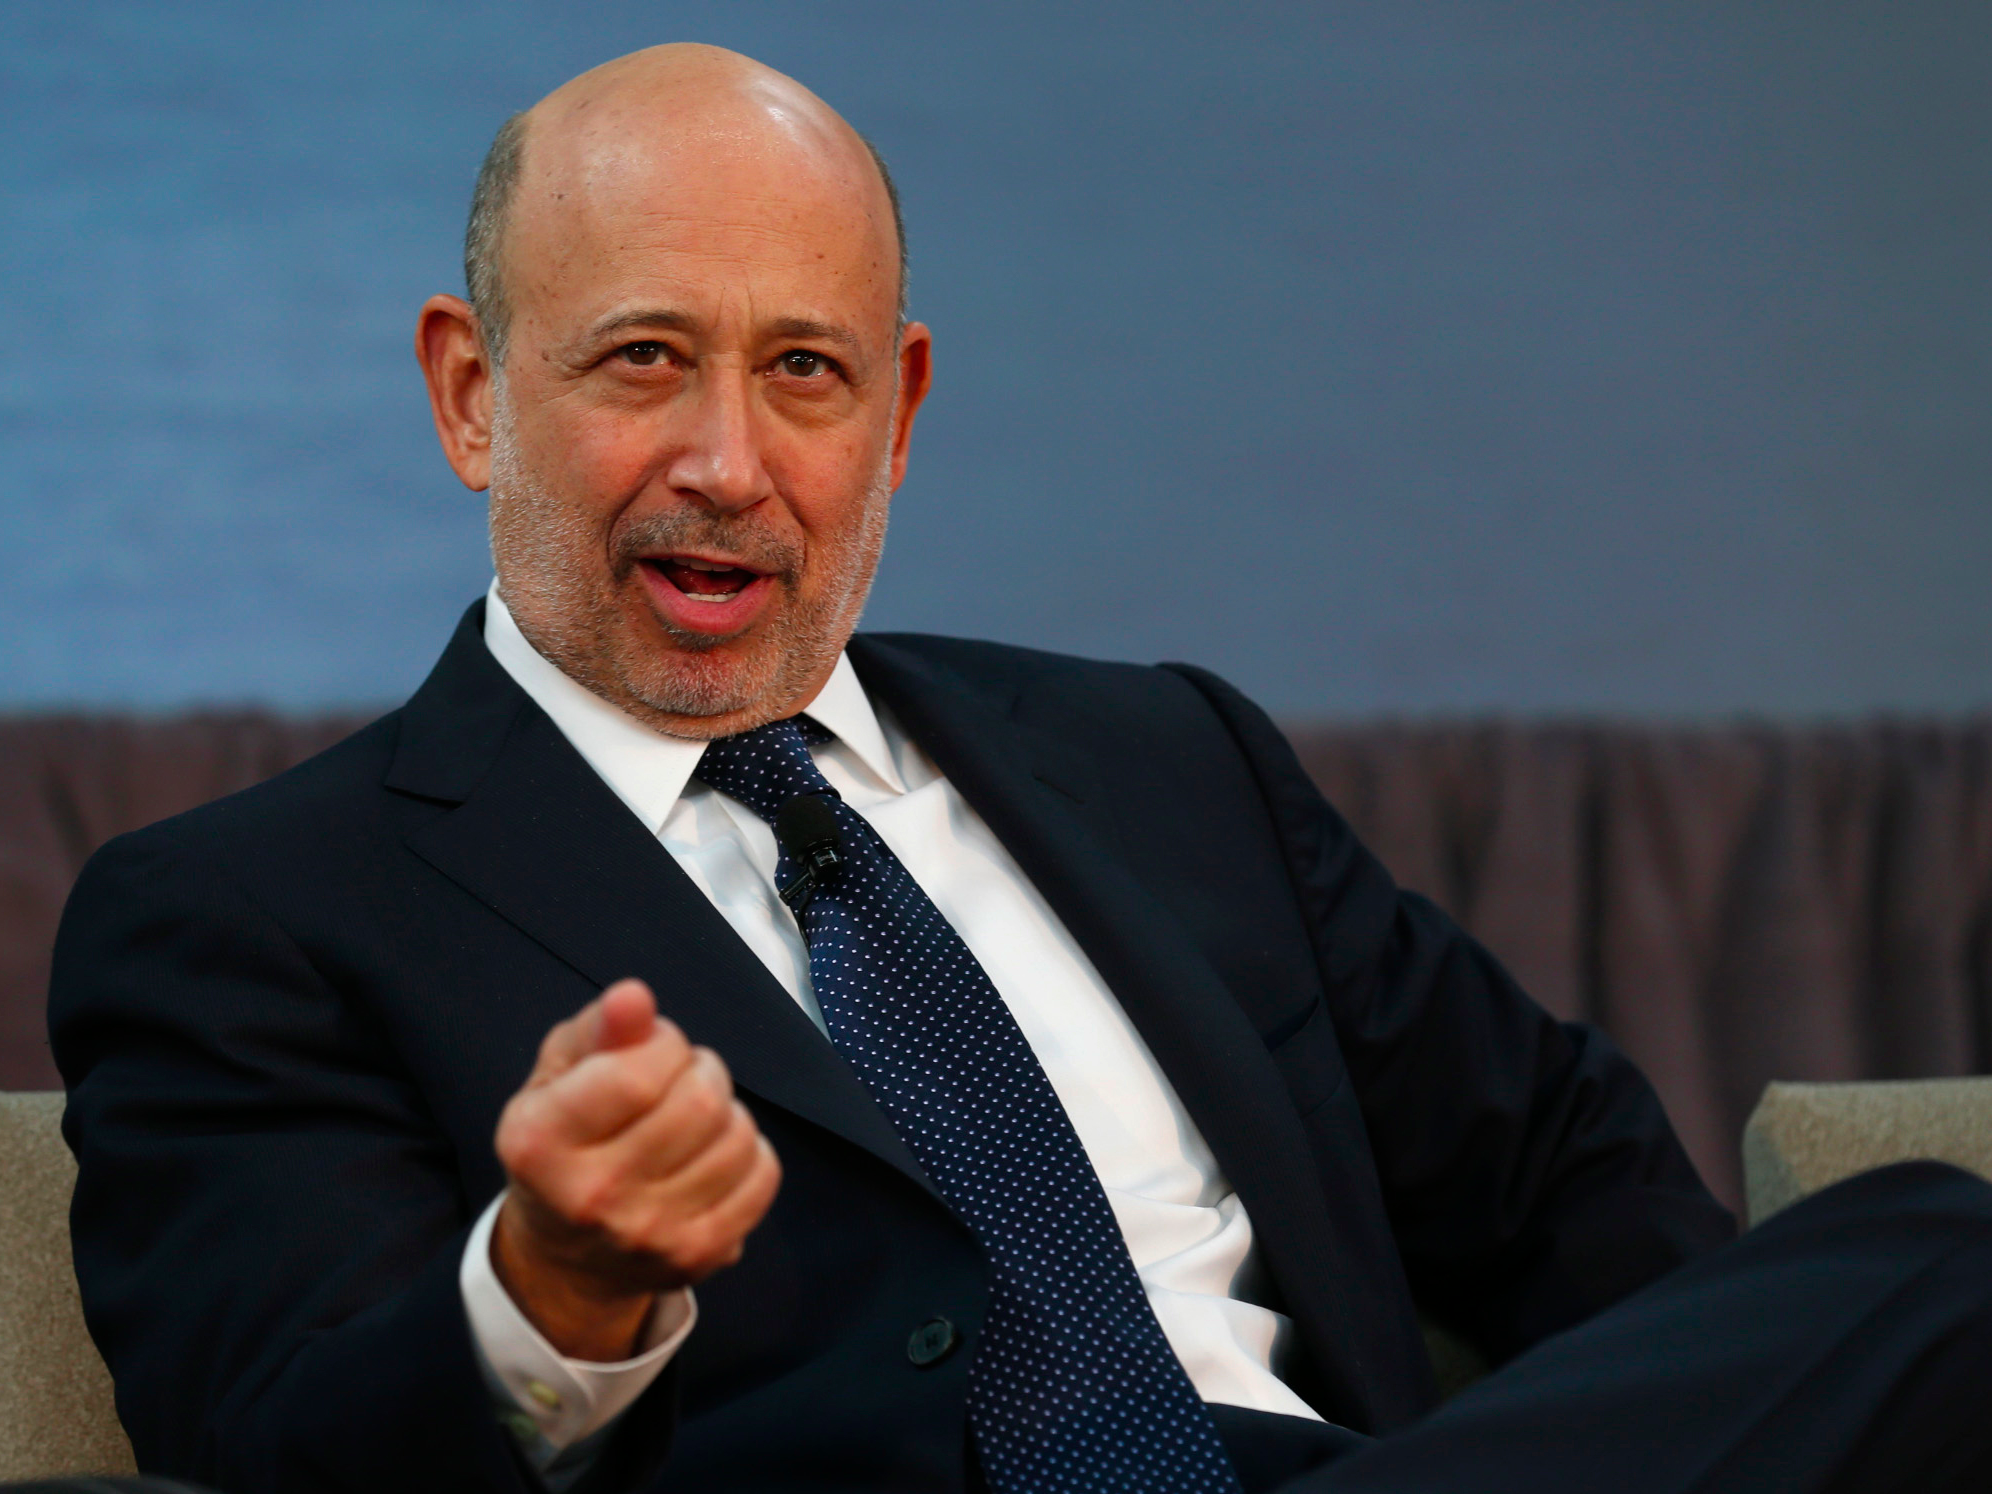 goldman sachs executives Goldman sachs execs still don't get it by  to say that the goldman sachs executives testifying lack introspection is like saying that the black.